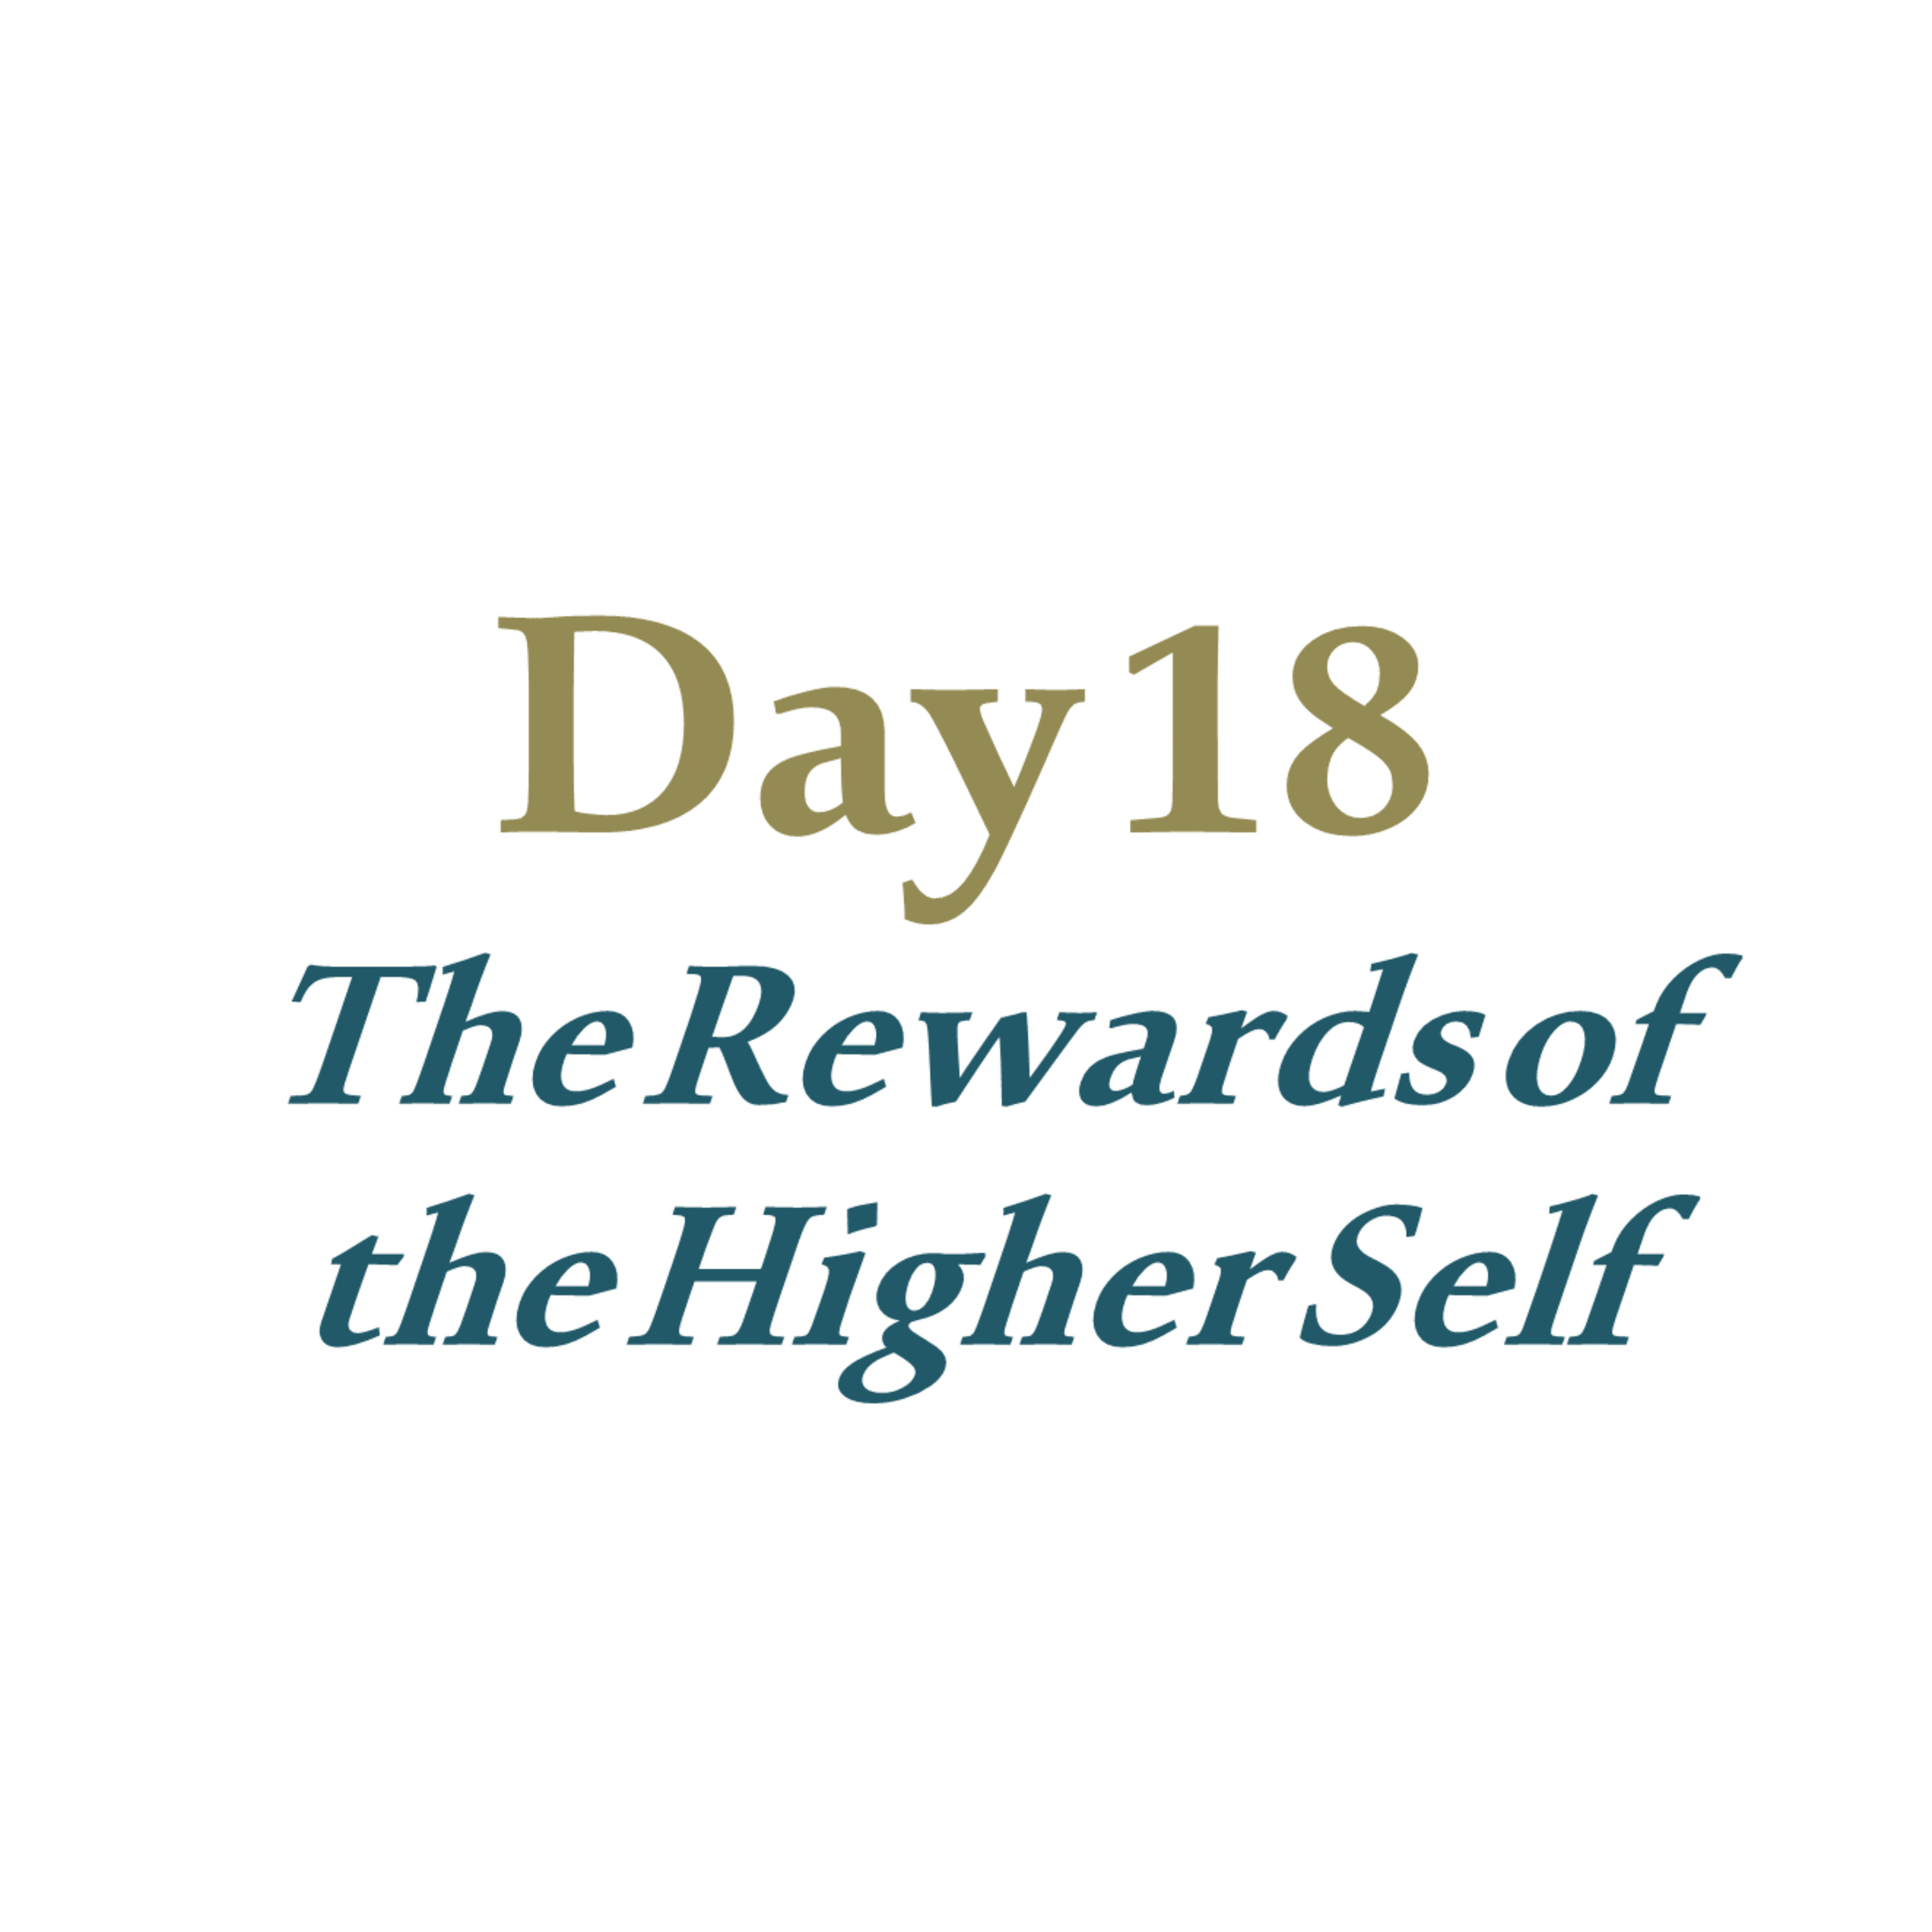 Day 18 - The Rewards of the Higher Self